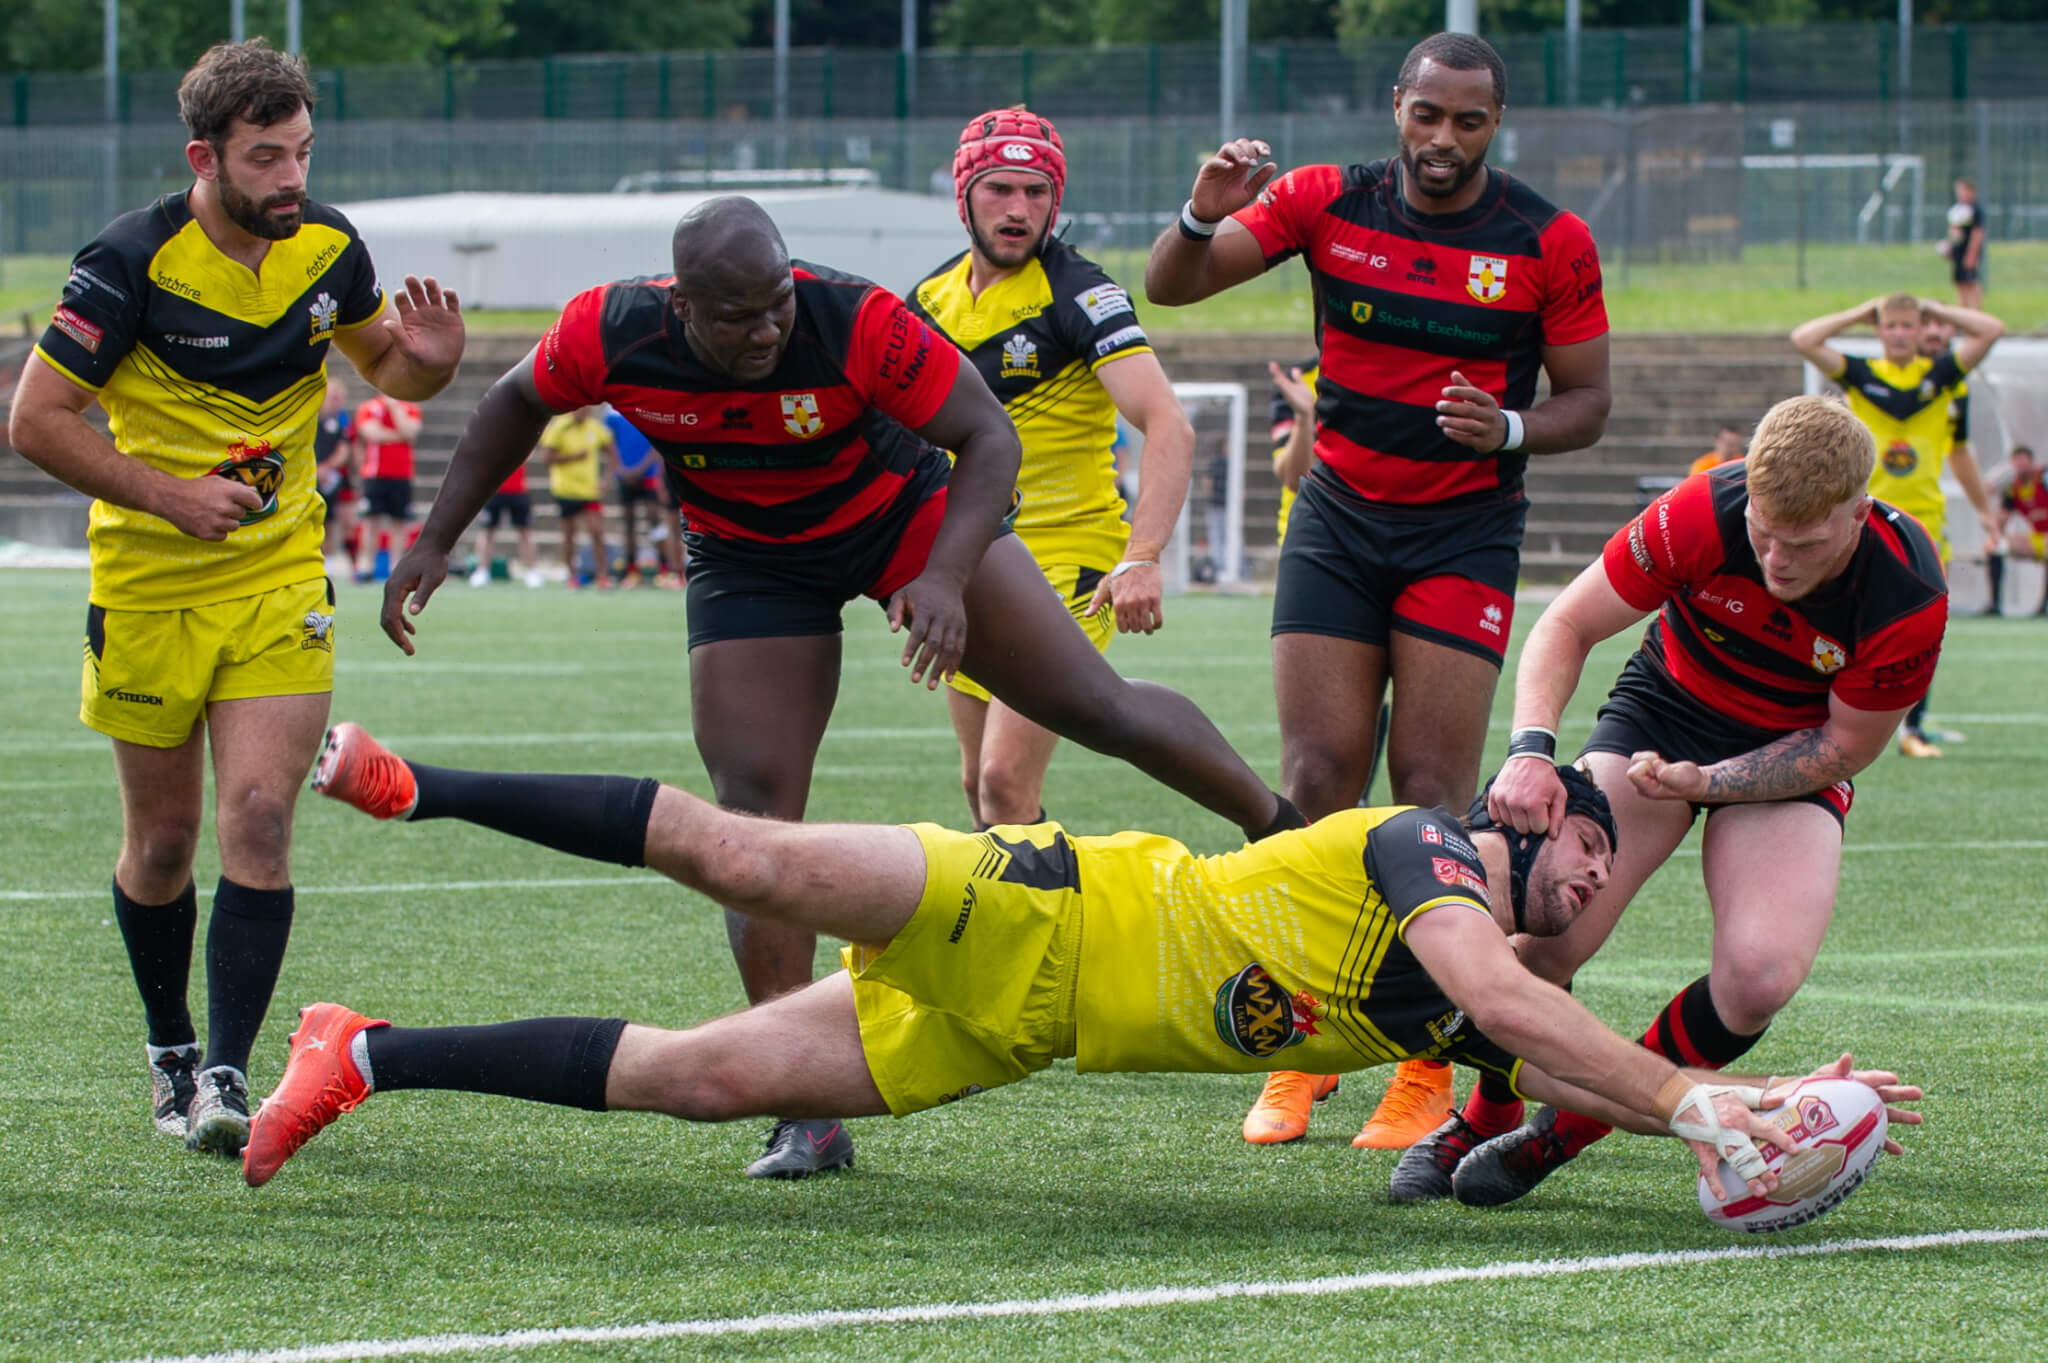 Crusaders' Challenge Cup tie at Skolars confirmed for March 10